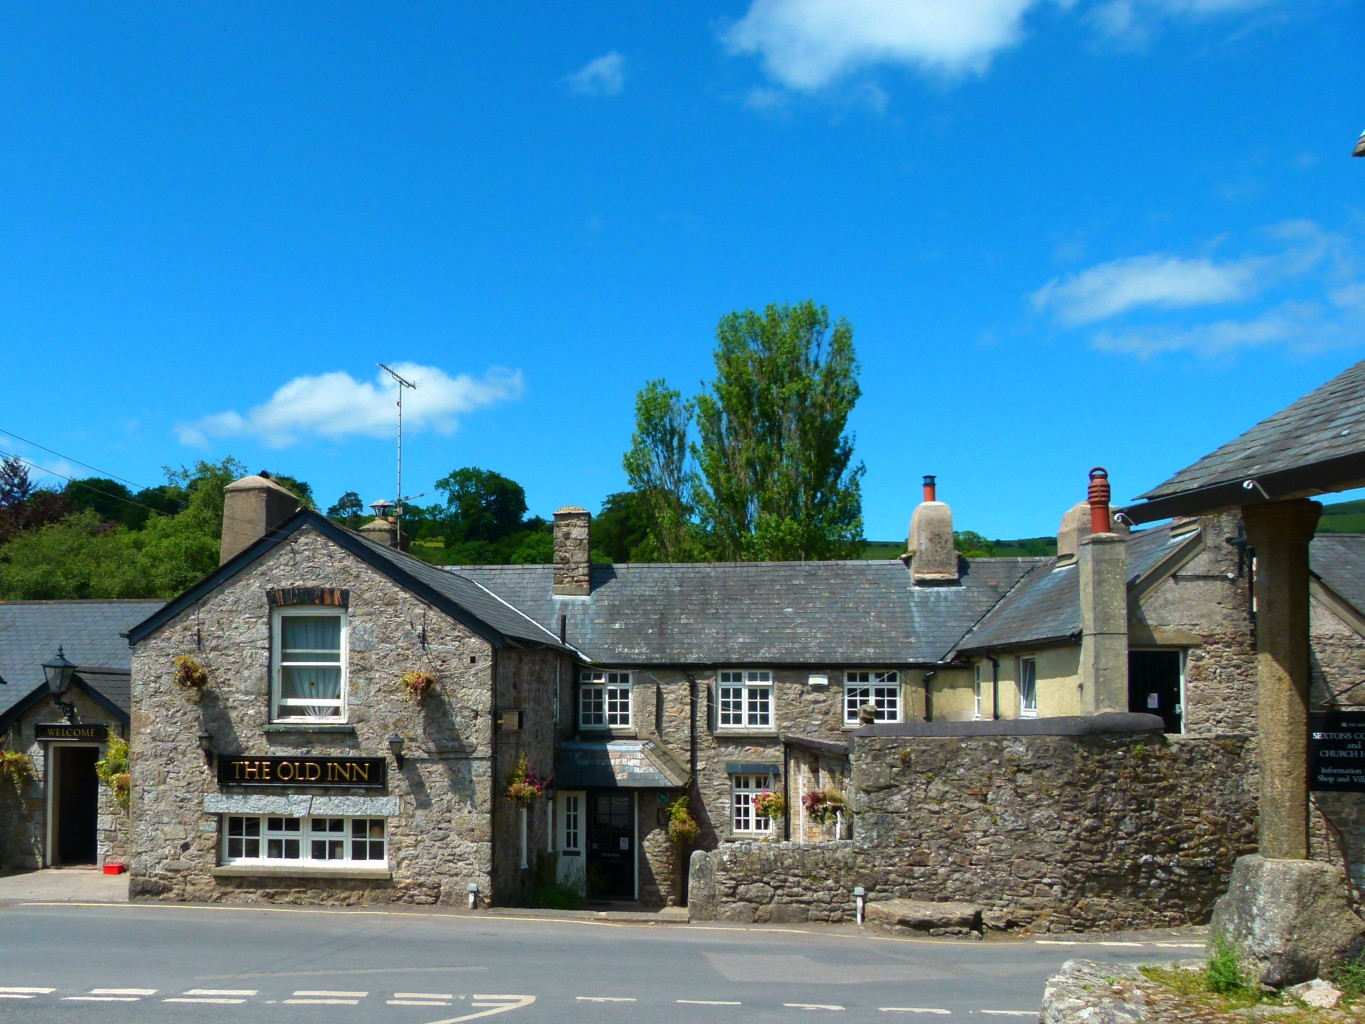 Pub in the village Widecombe